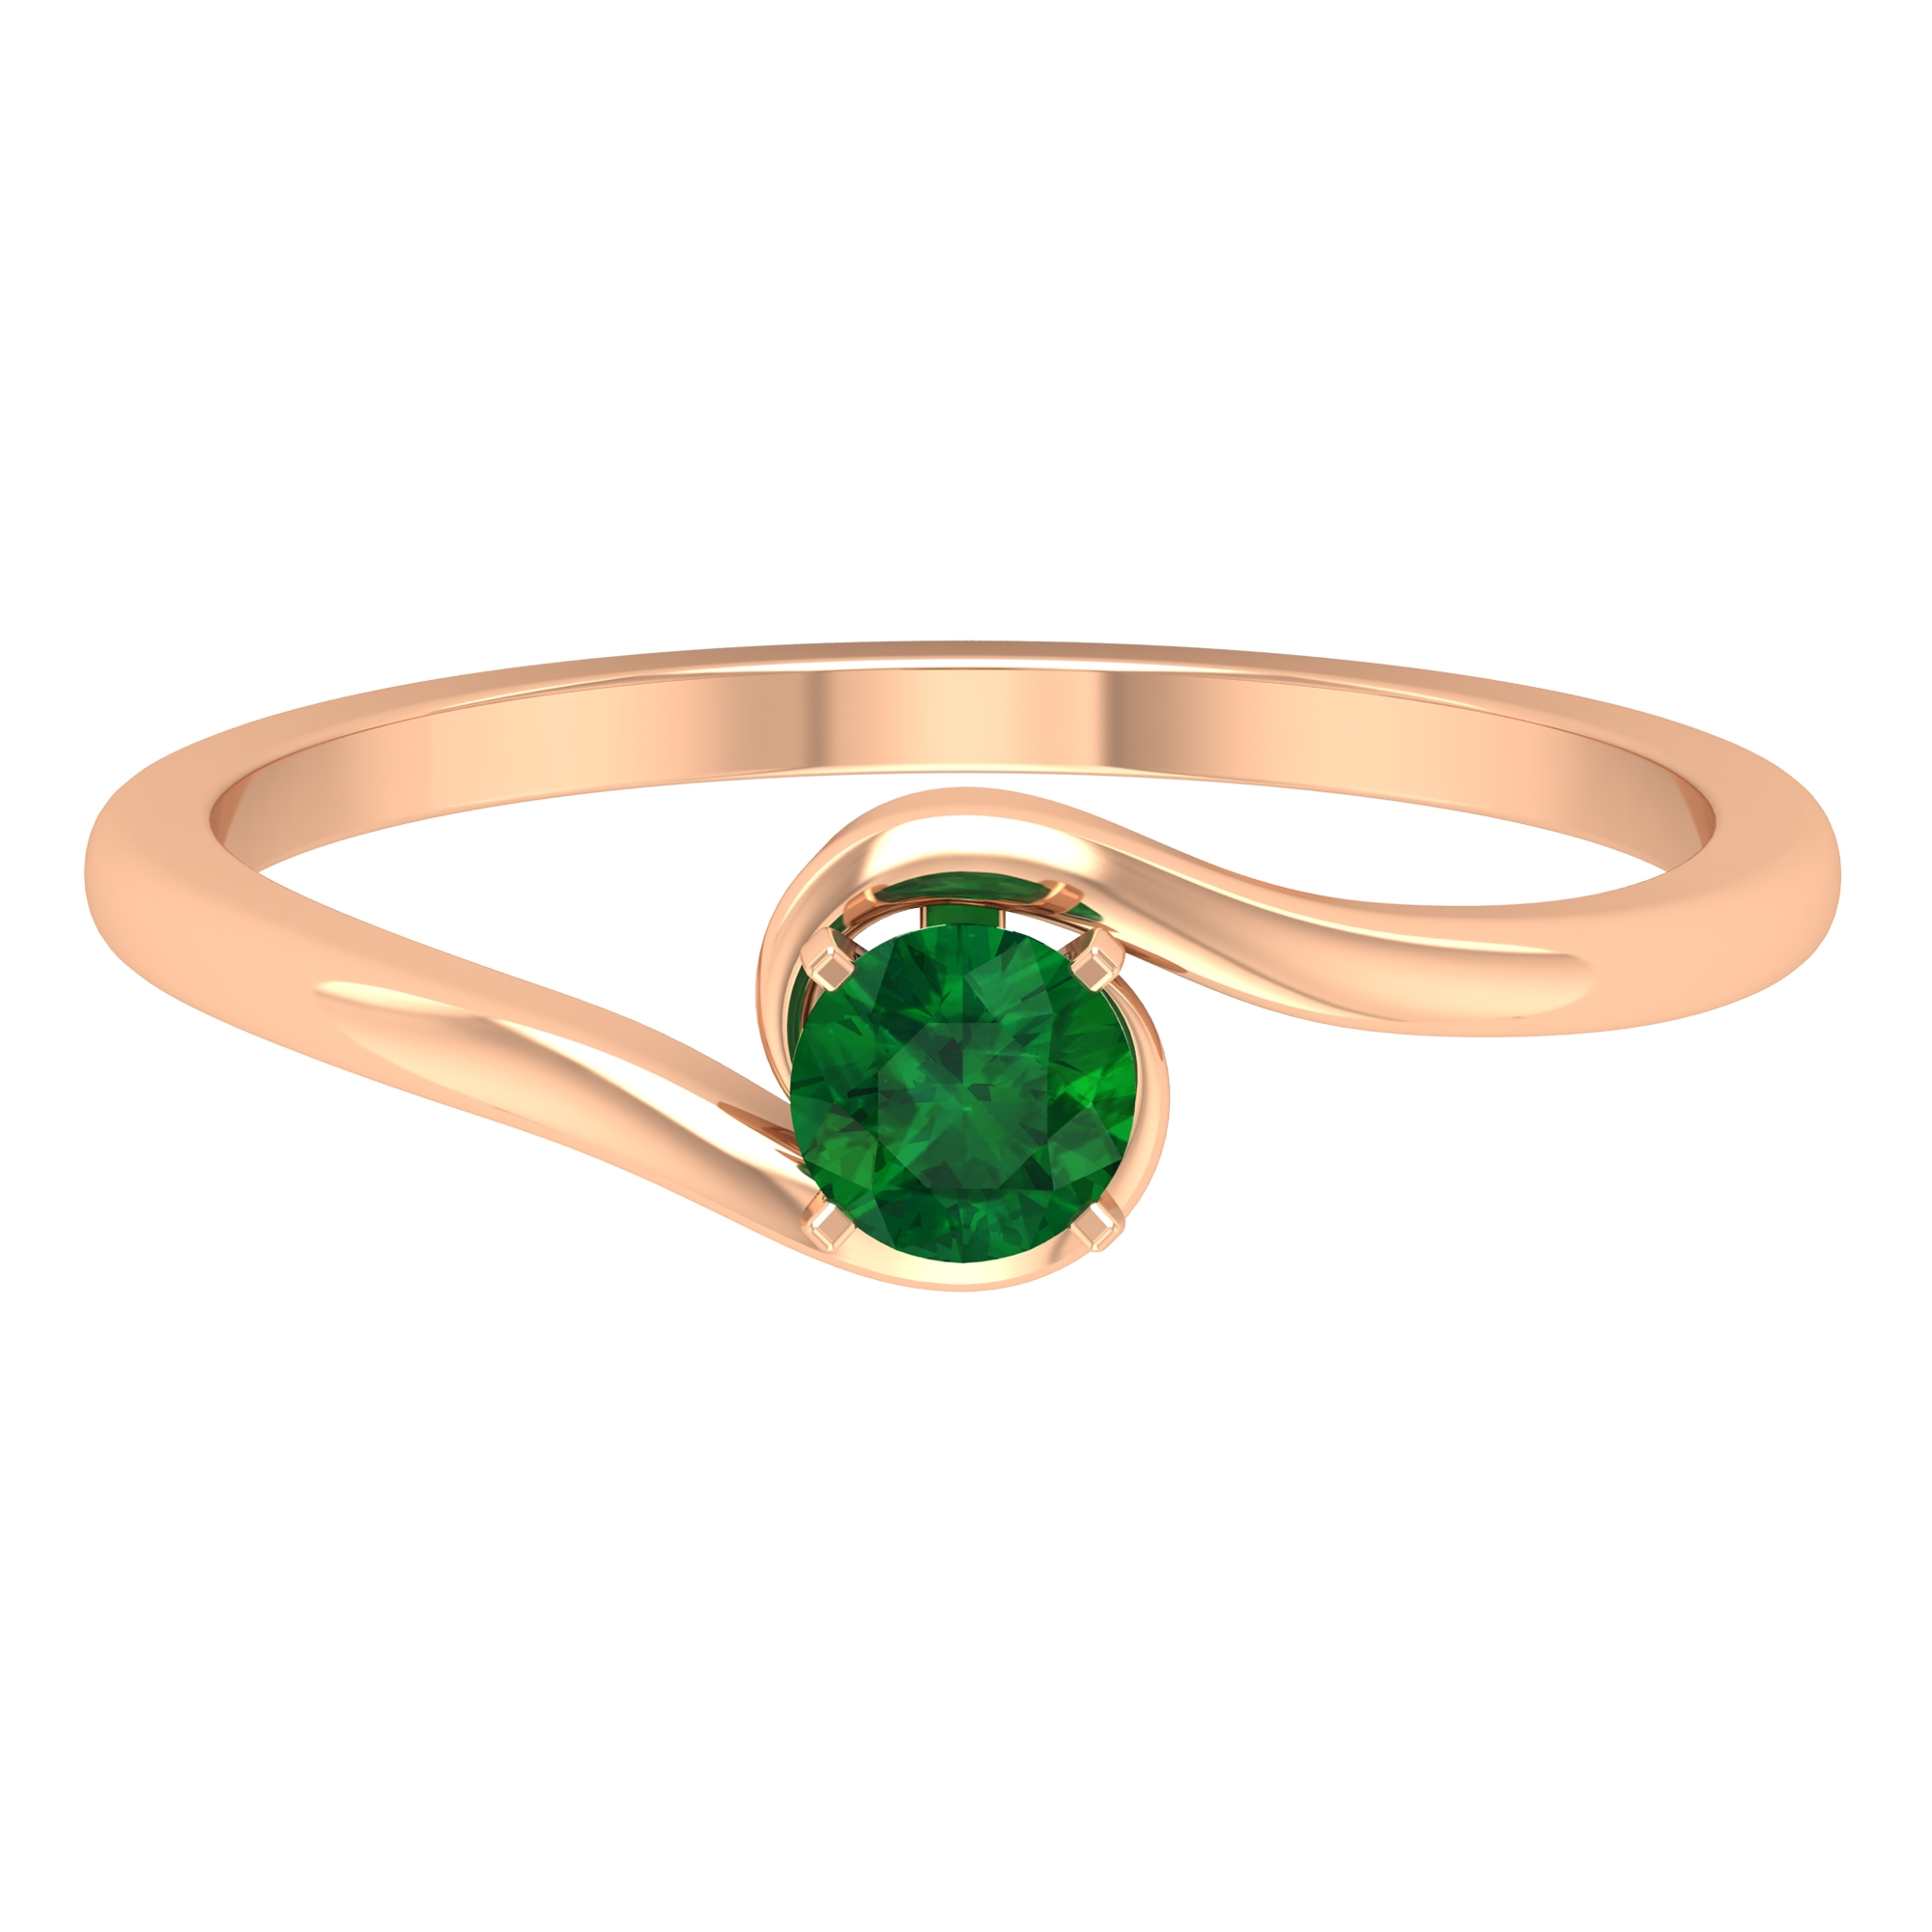 May Birthstone 4 MM Emerald Solitaire Ring in Square Prong Setting with Bypass Shank